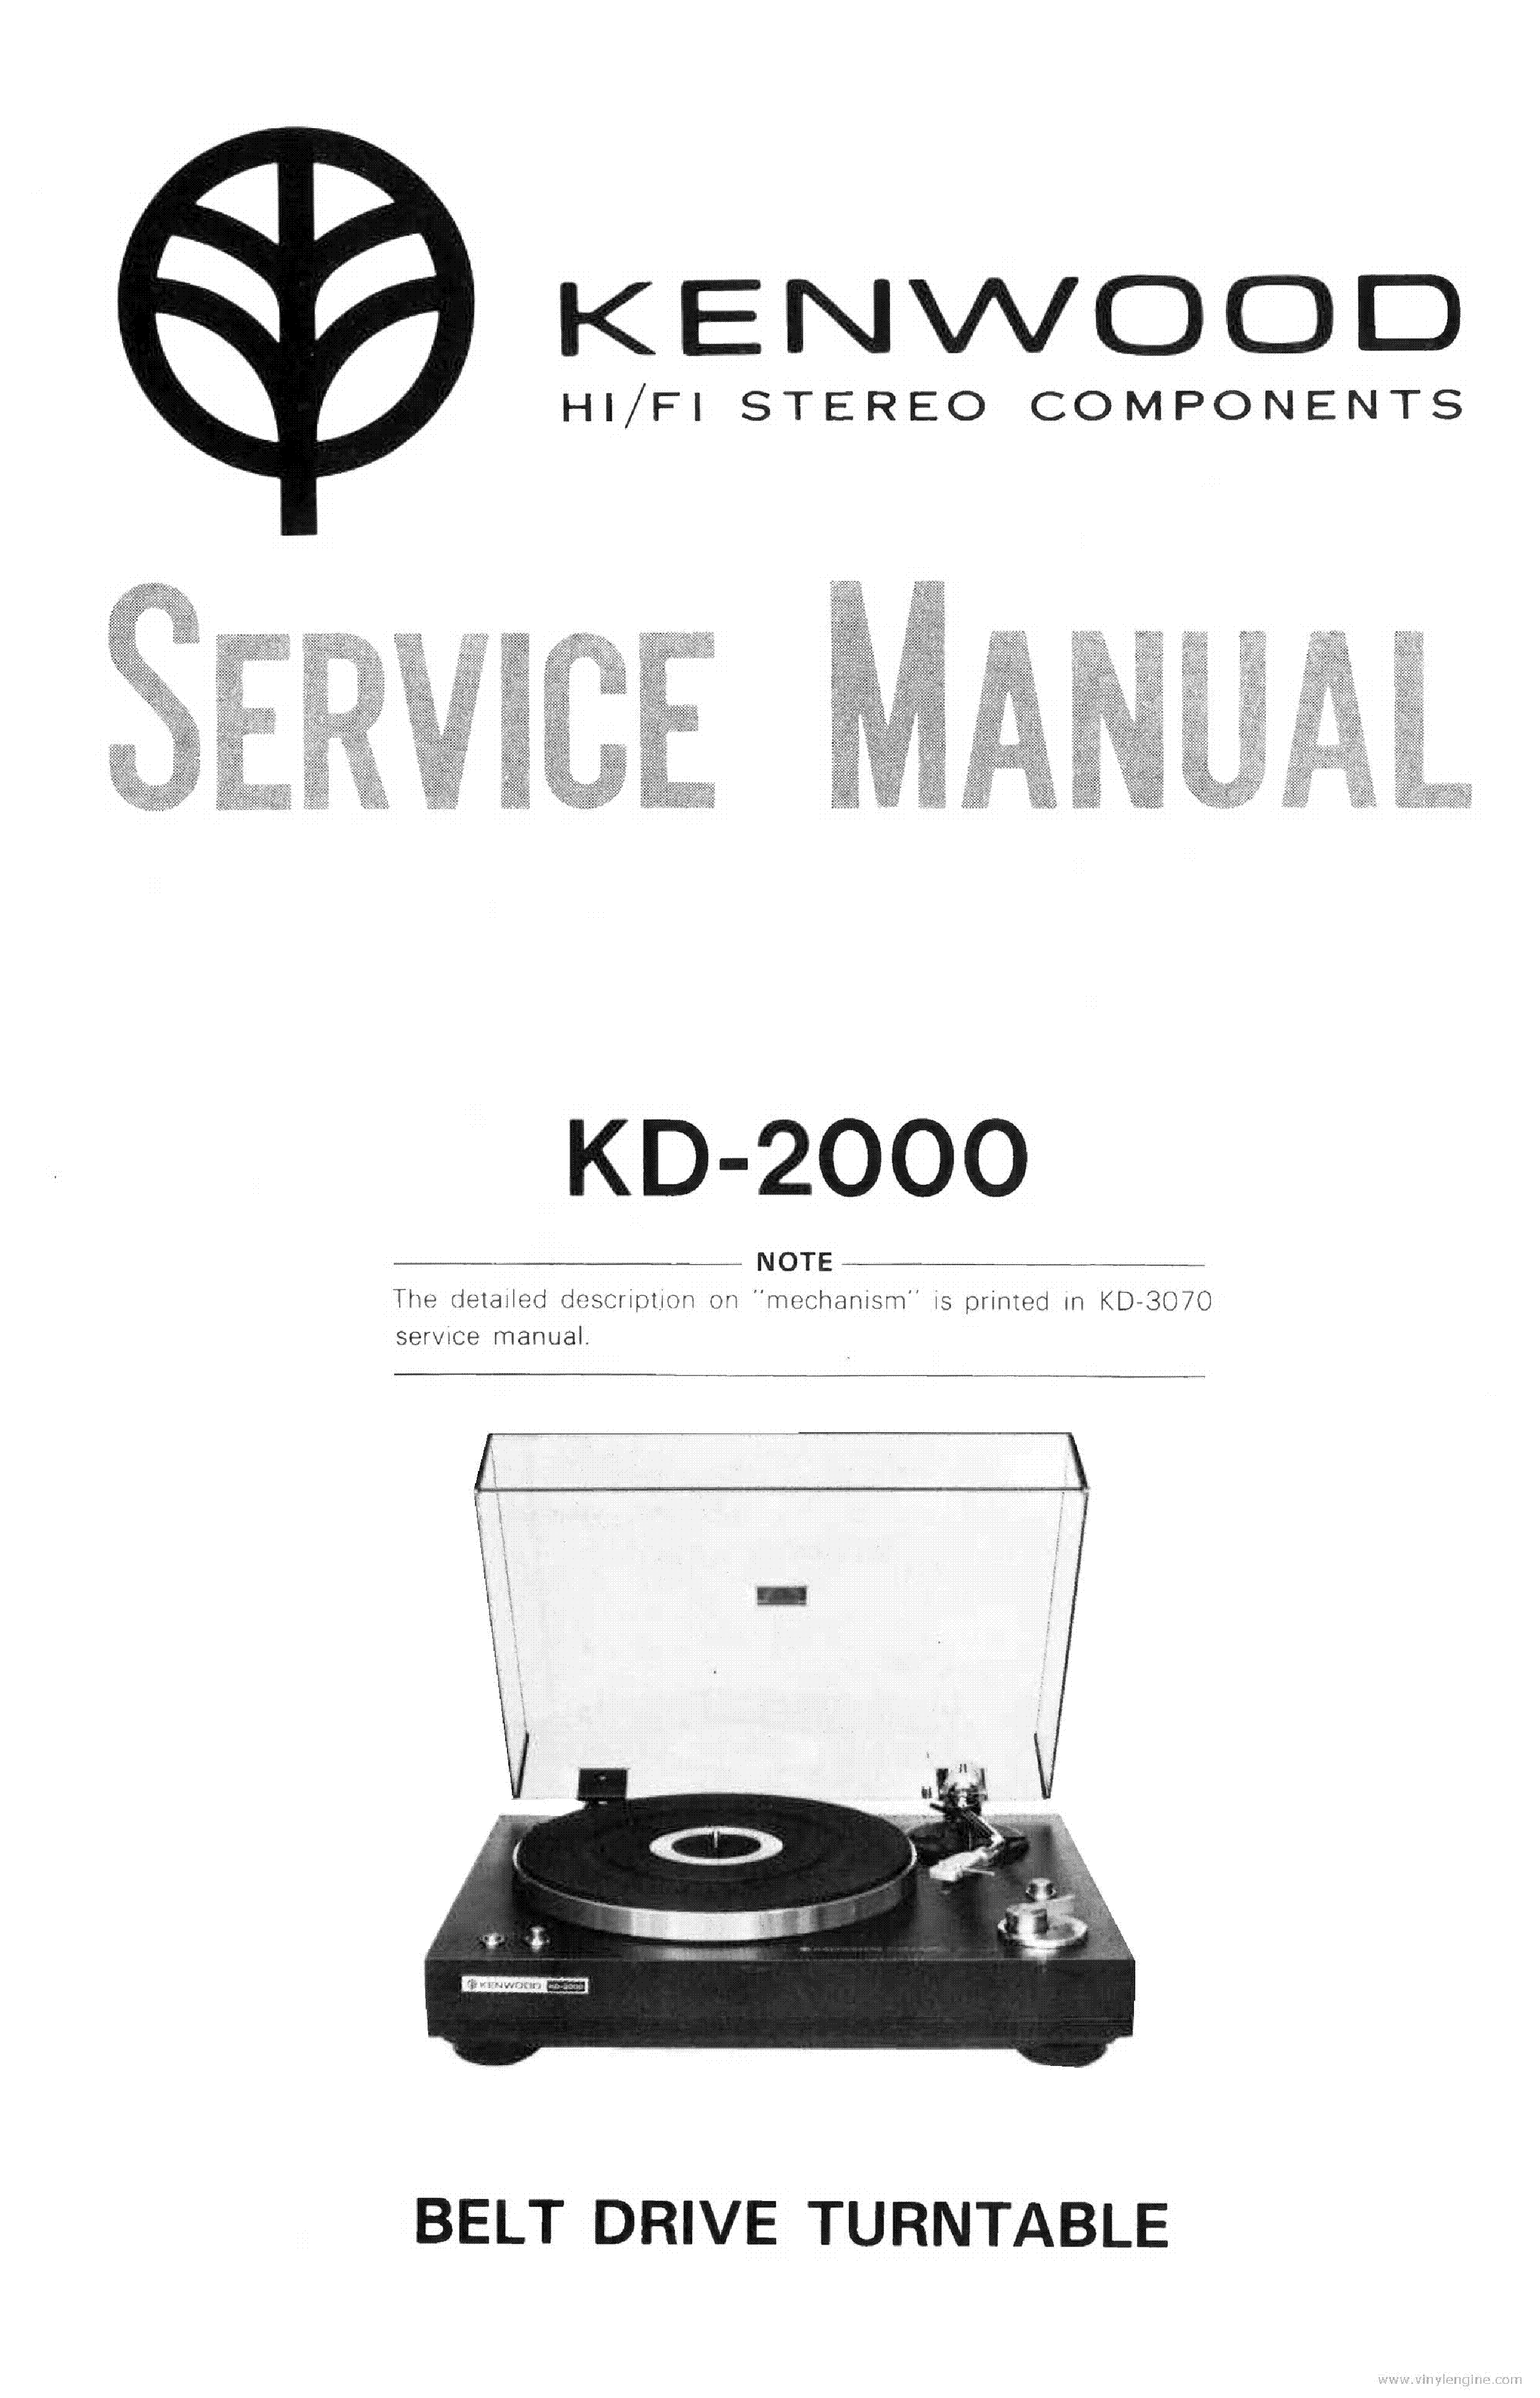 KENWOOD KT-917 Service Manual download, schematics, eeprom